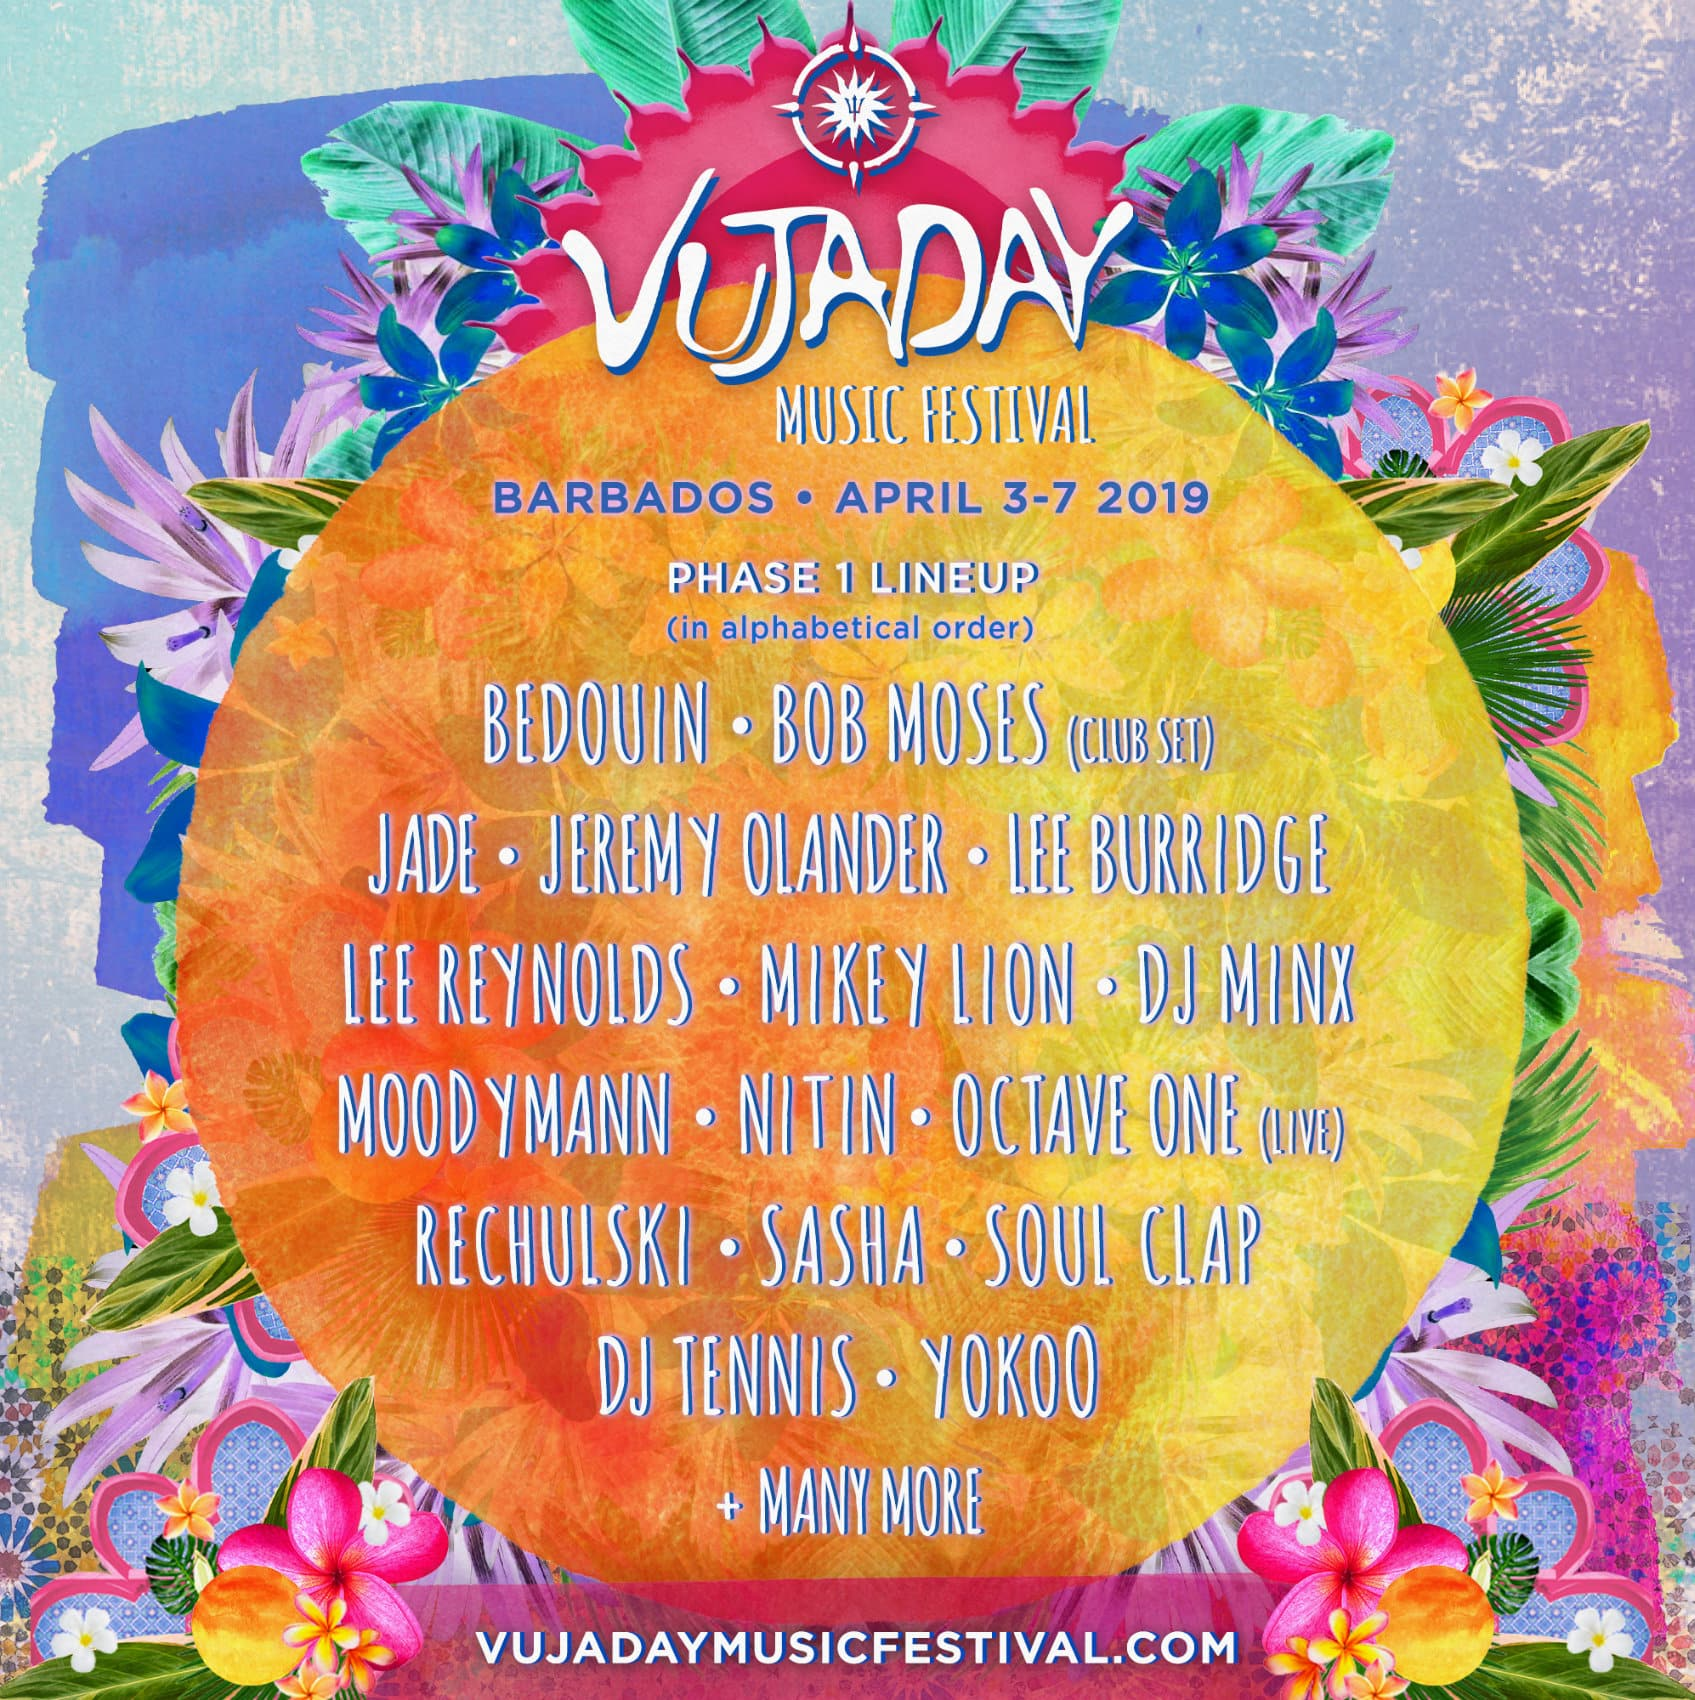 Vujaday 2019 - Vujaday Music Festival In Barbados Announces Sasha, Bob Moses, Lee Burridge, Jeremy Olander, Moodymann, DJ Tennis, Octave One And More For 2019 Edition